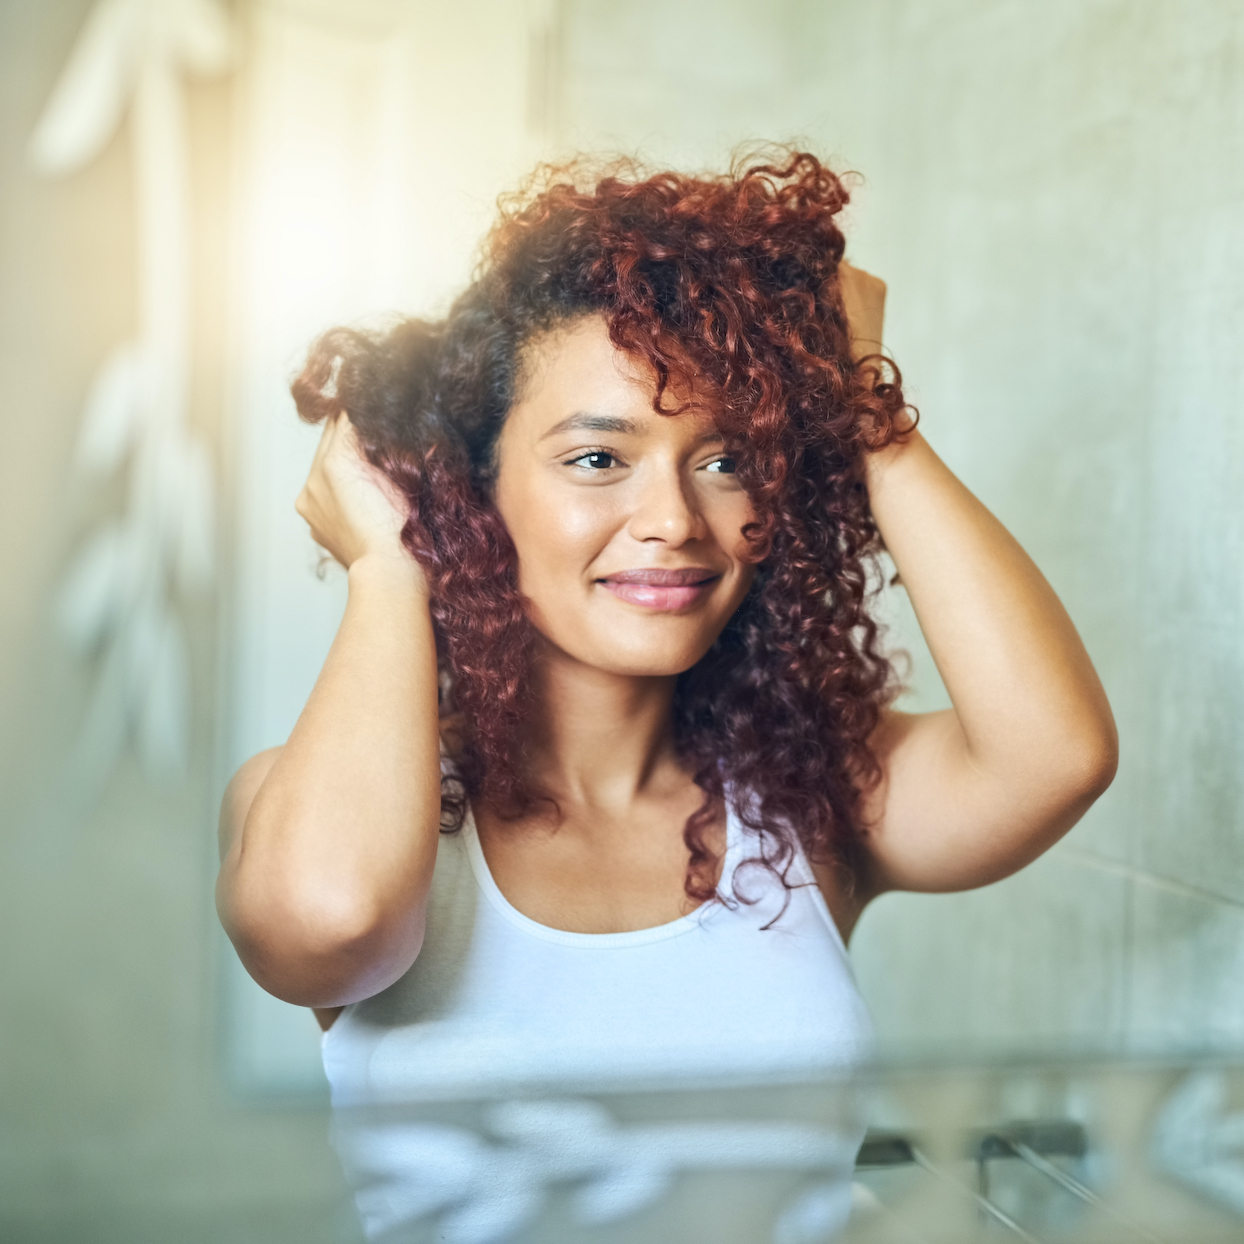 Shot of a young woman going through her haircare routine